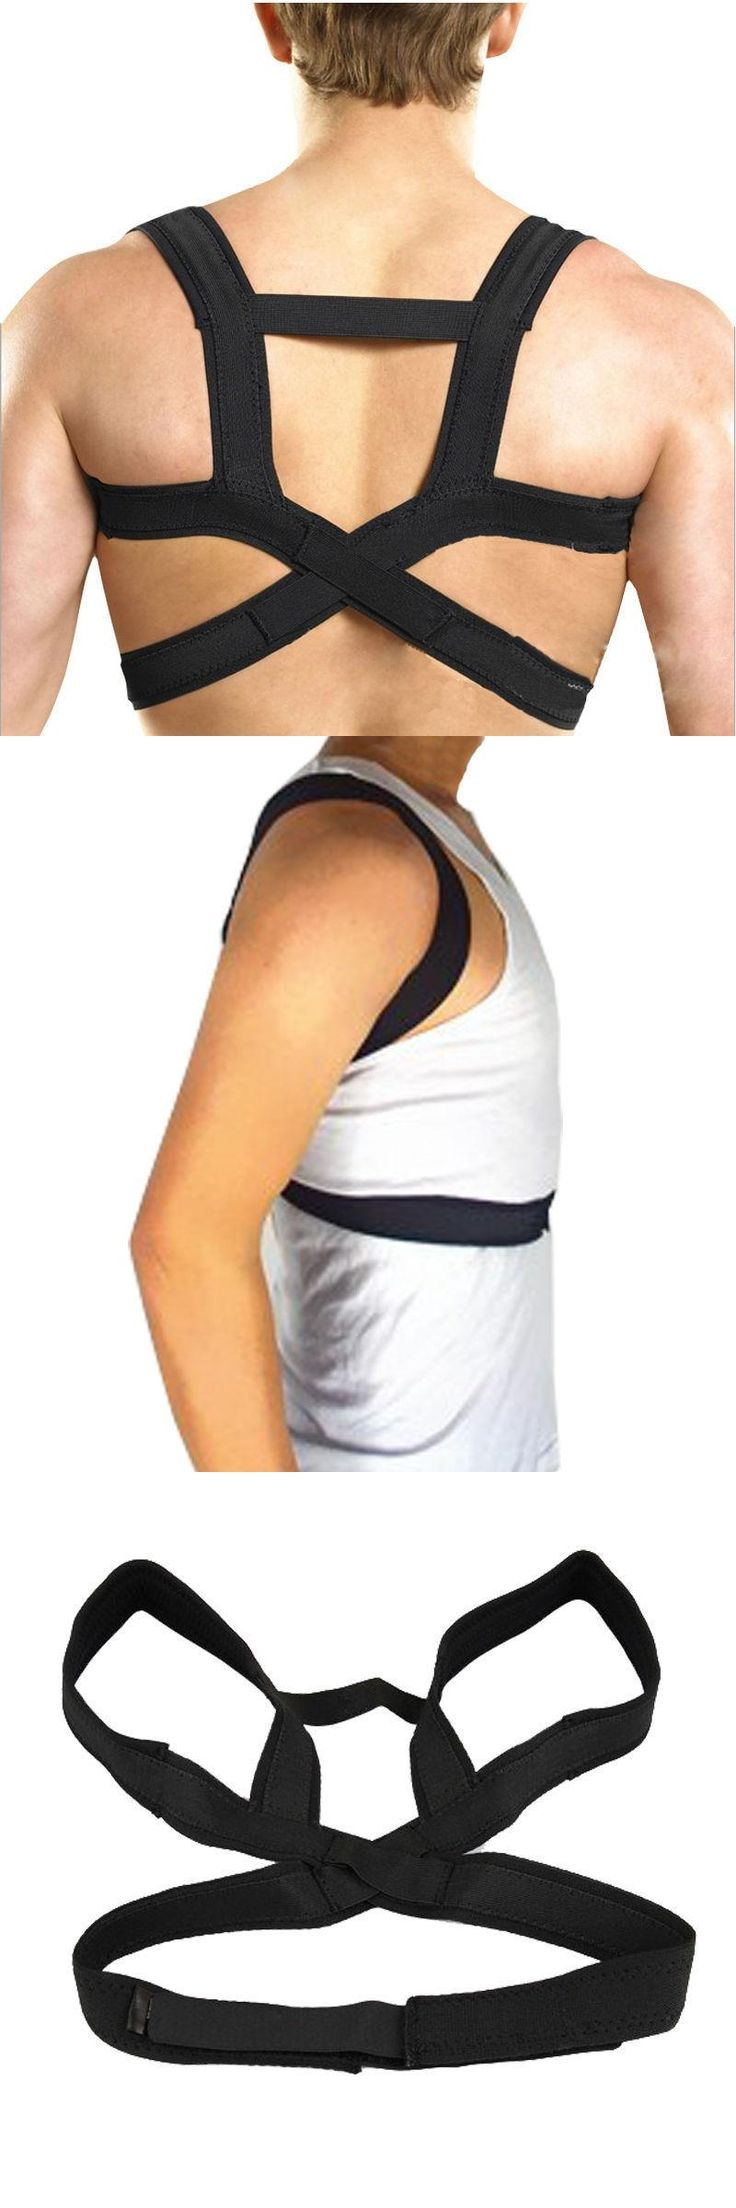 [Visit to Buy] APTOCO Elastic Posture Corrector Support Back Brace with Breathable Straps Clavicle Support Portable Brace Belt for Men Women #Advertisement